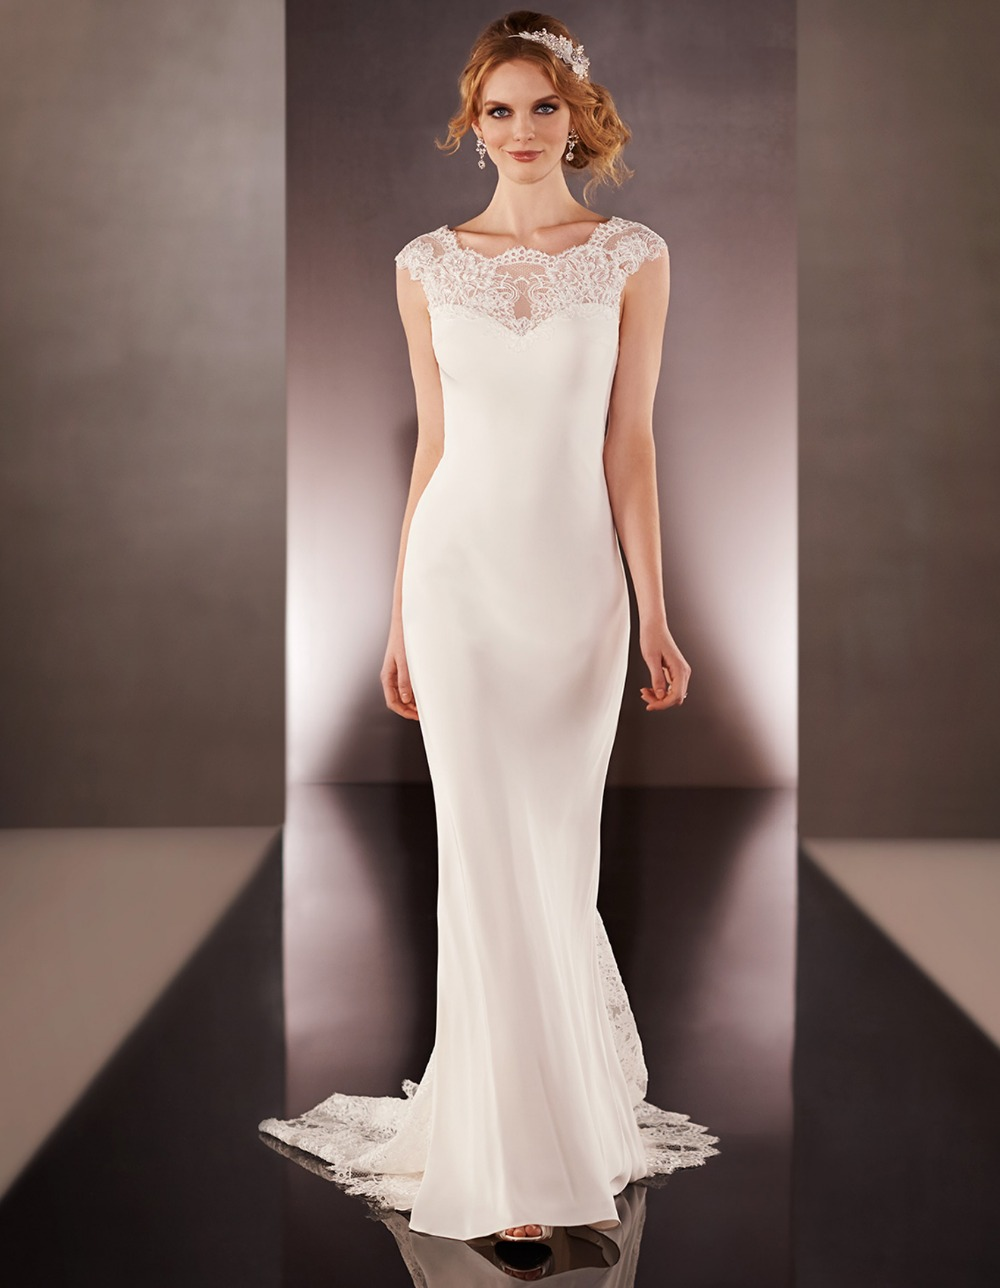 cheap ivory wedding dresses JLM Couture JIM HJELM Spring Collection Style Ivory beaded Alencon lace over Peach Organza modified A line bridal gown sweetheart neckline